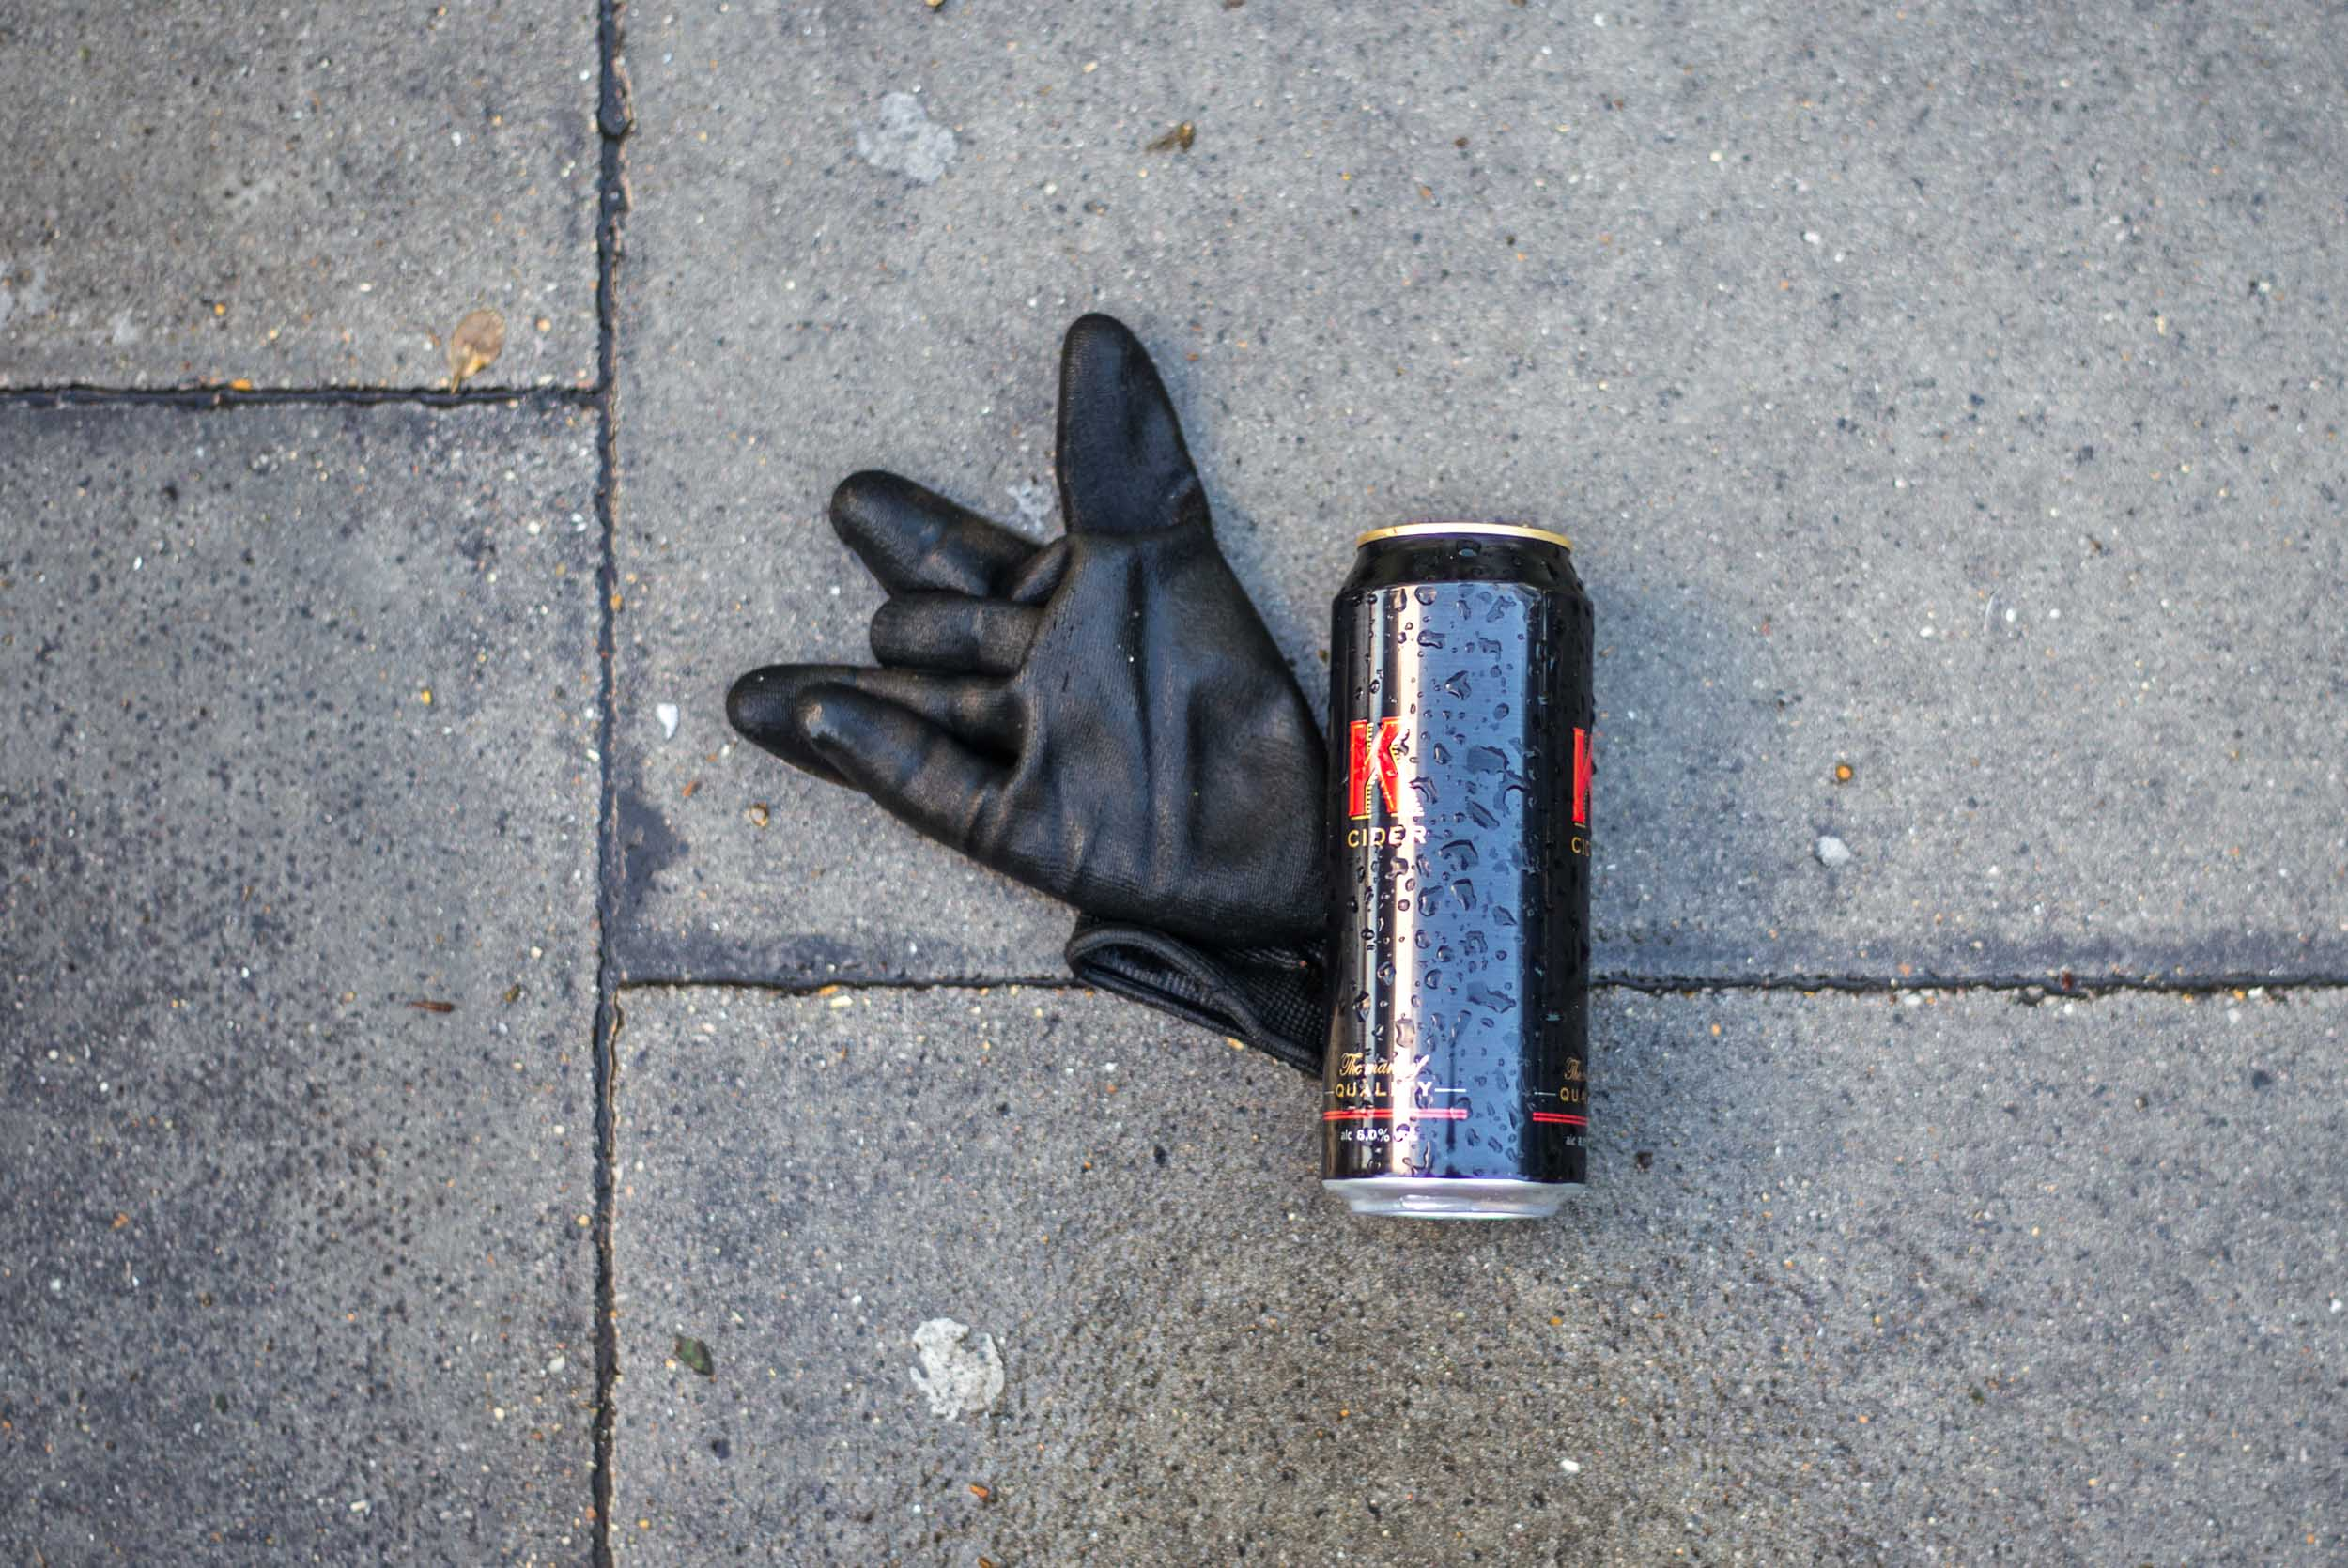 Leather Glove and Cider Can. London 2017